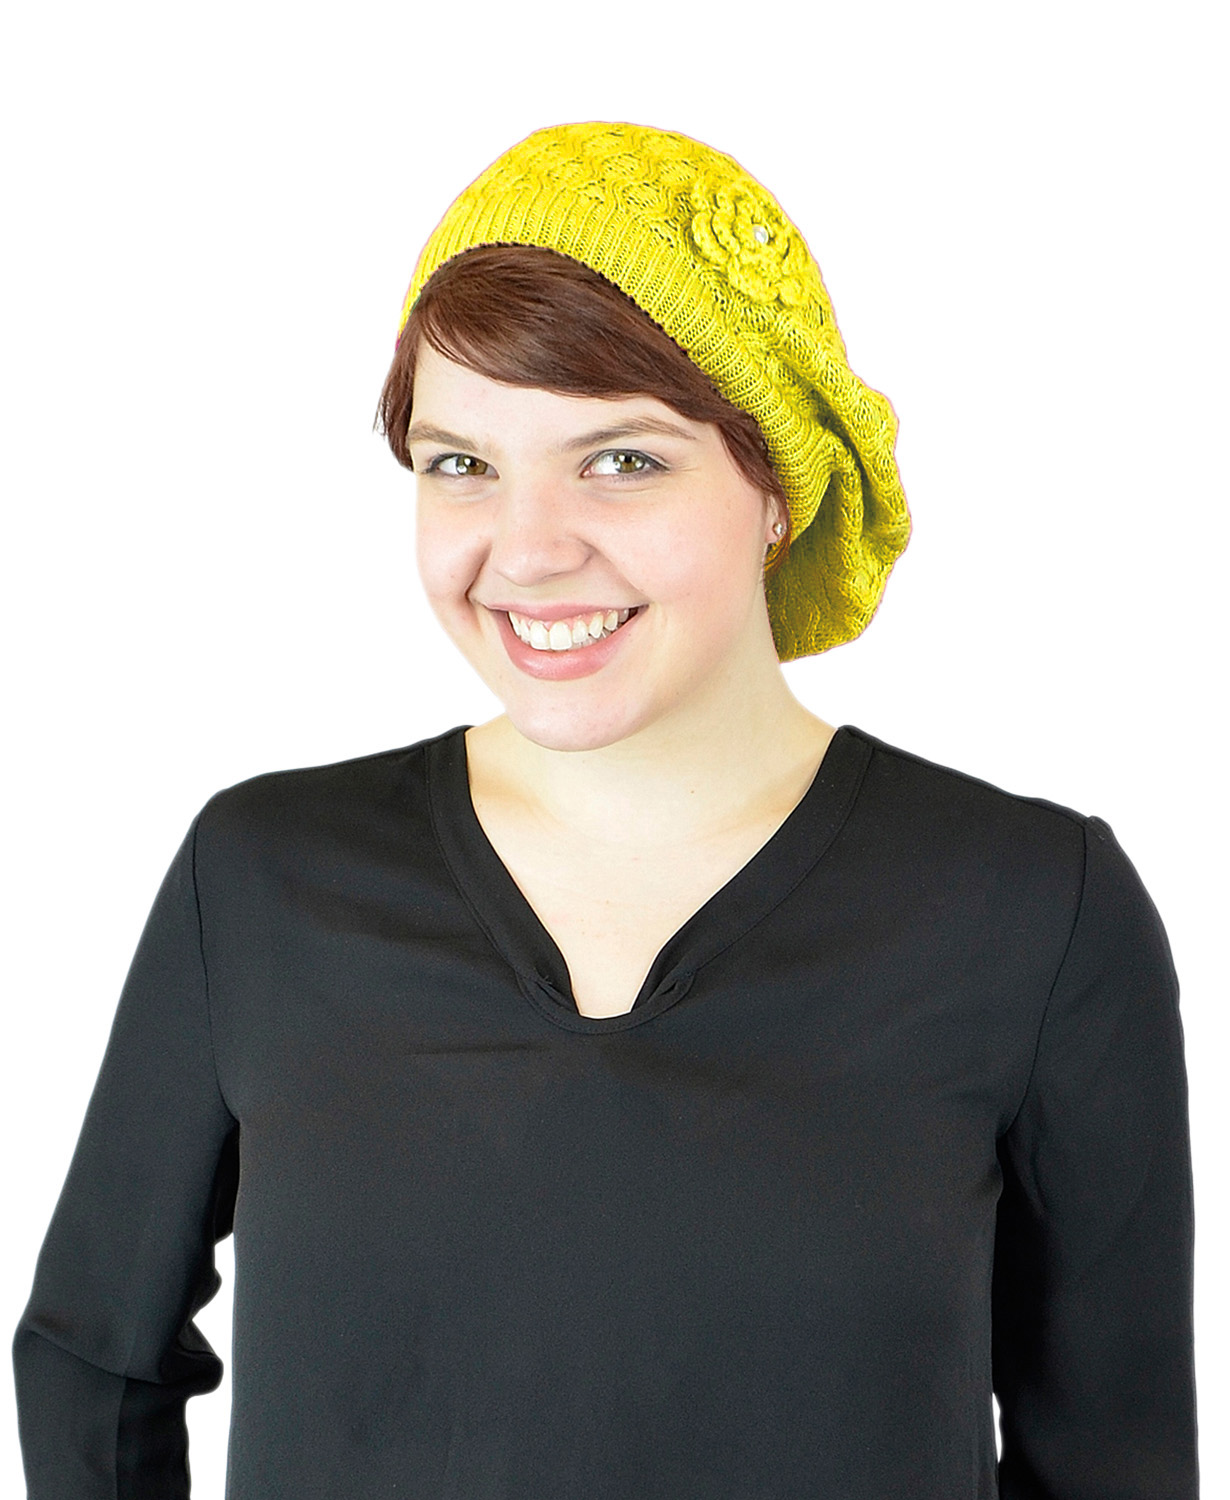 Belle Donne - Women's Mesh Crocheted Accented Stretch Beret Hat- Yellow